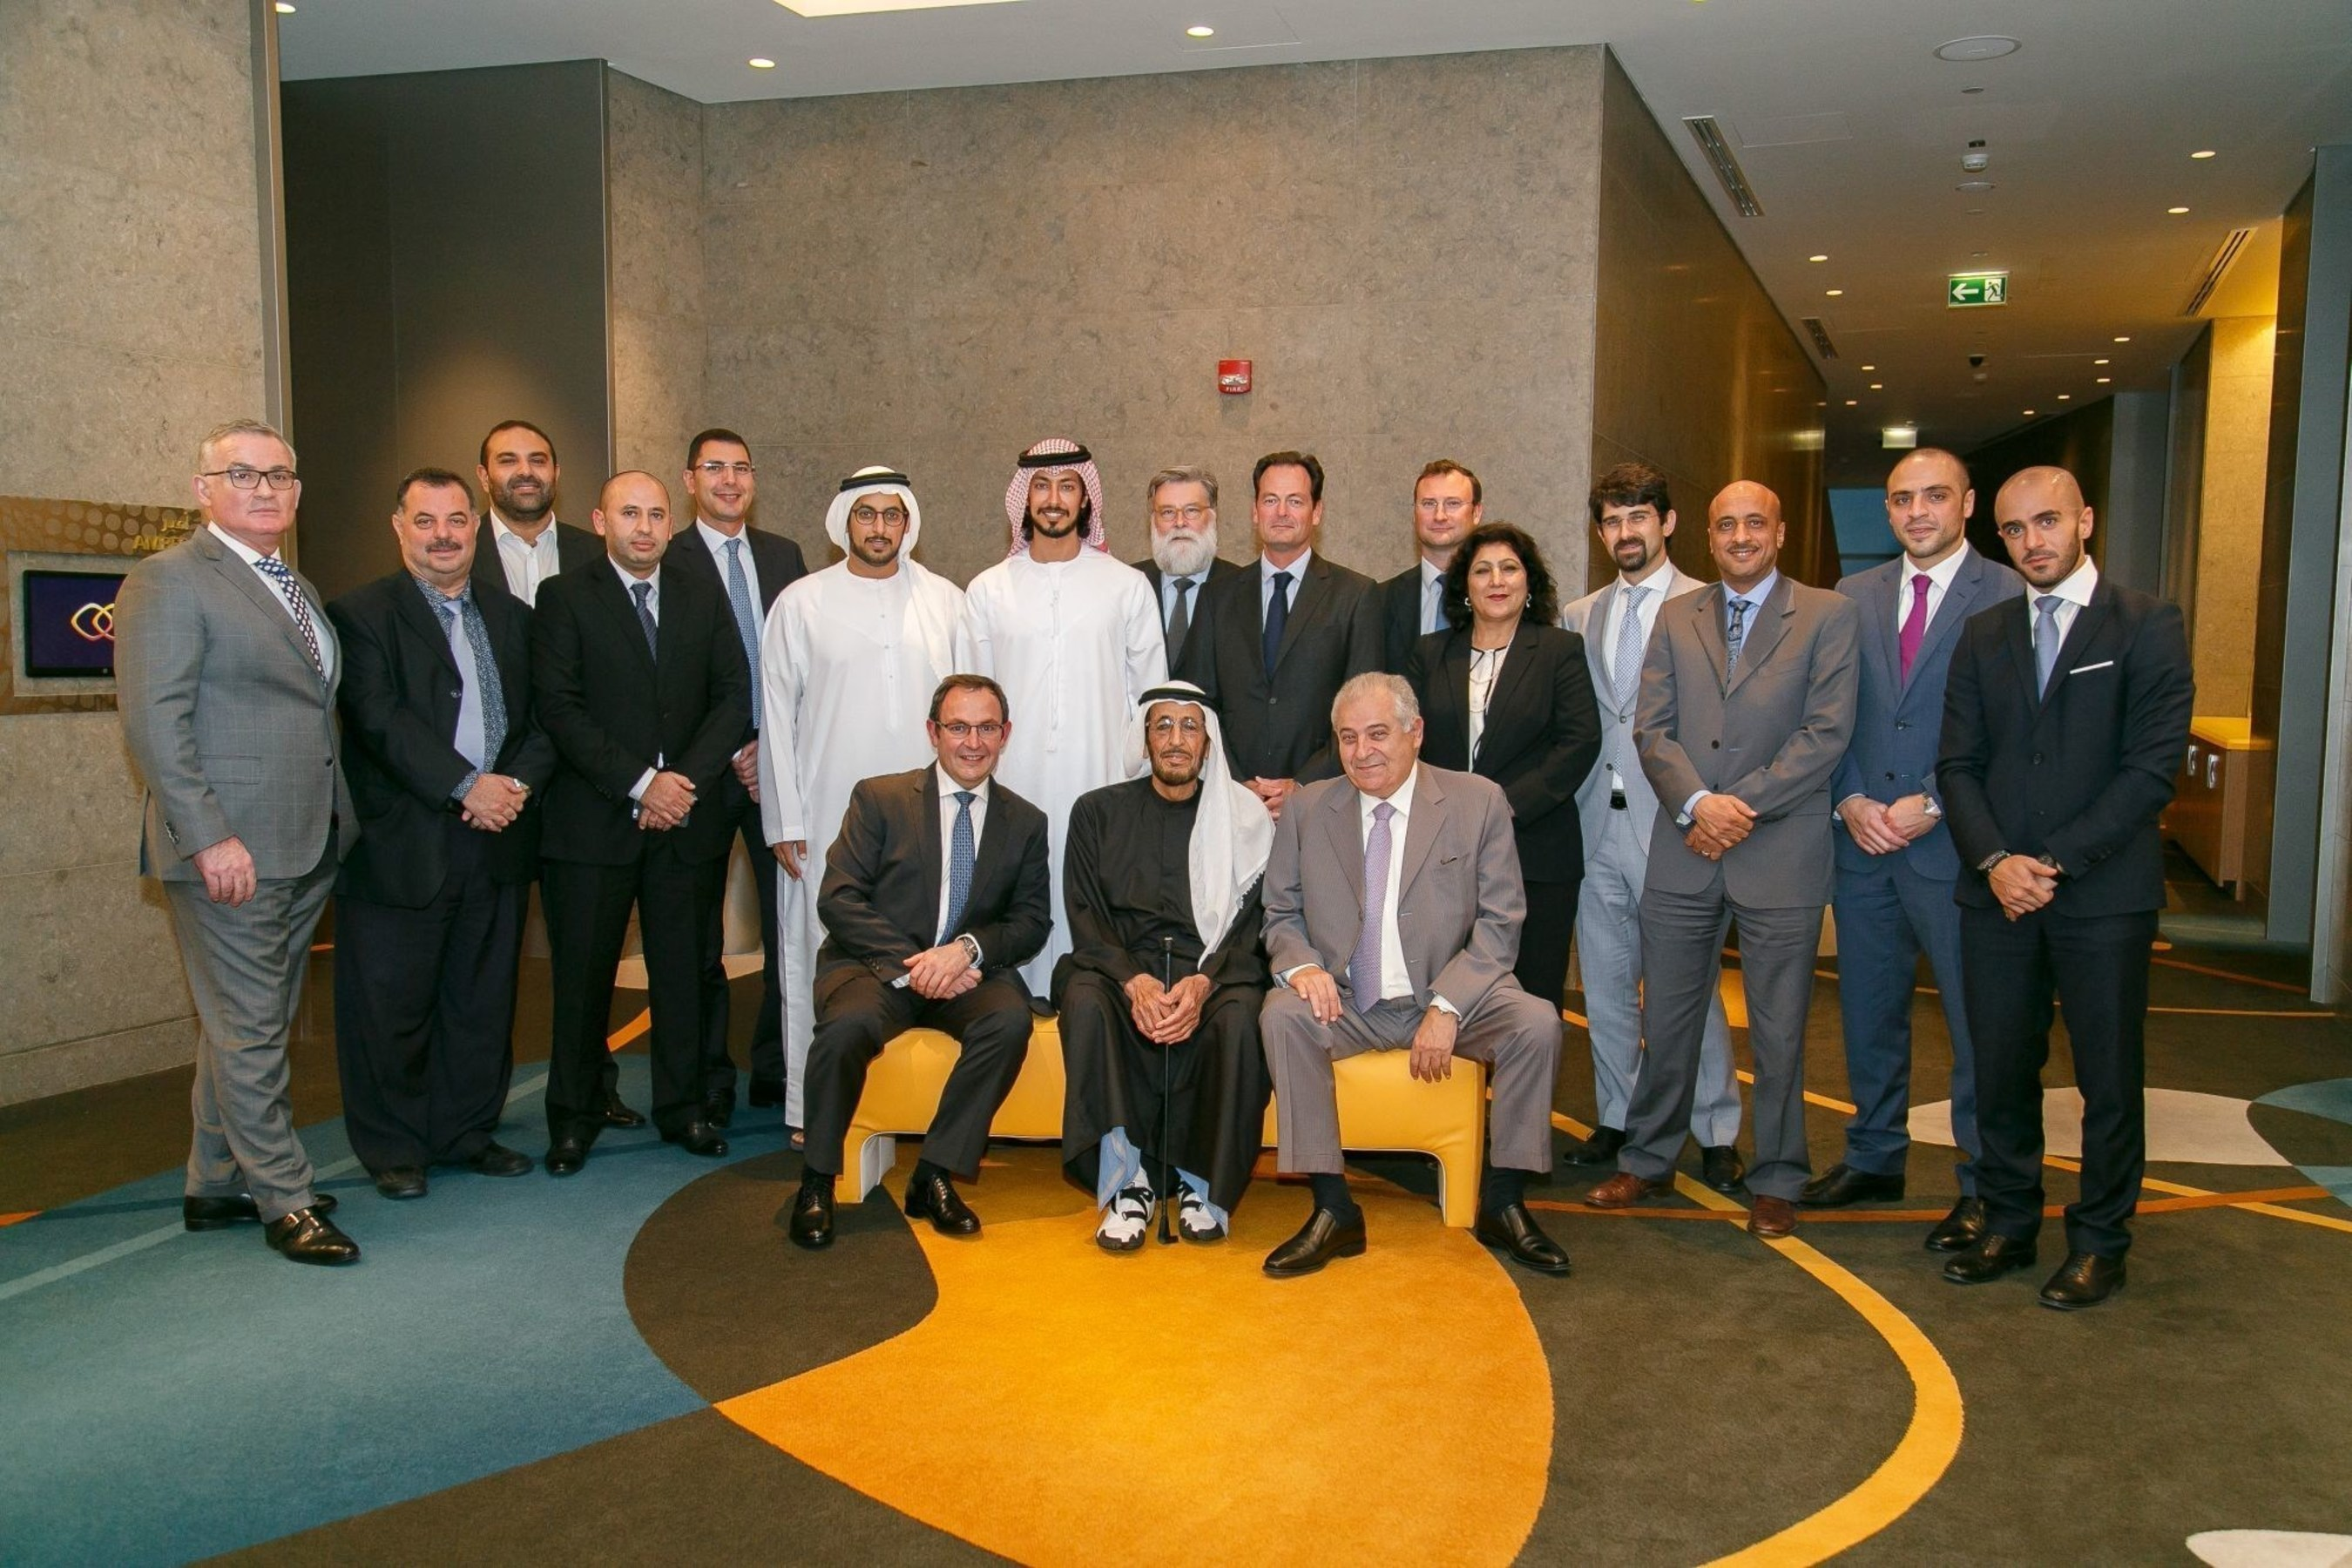 H.E. Saeed bin Ahmed Al Otaiba , Otaiba Saeed Al Otaiba , Aylan Saeed Al Otaiba and Hasabi Real Estate representatives with senior executives from Roya and Accor as well as key stakeholders during the signing ceremony. (PRNewsFoto/Roya International) (PRNewsFoto/Roya International)